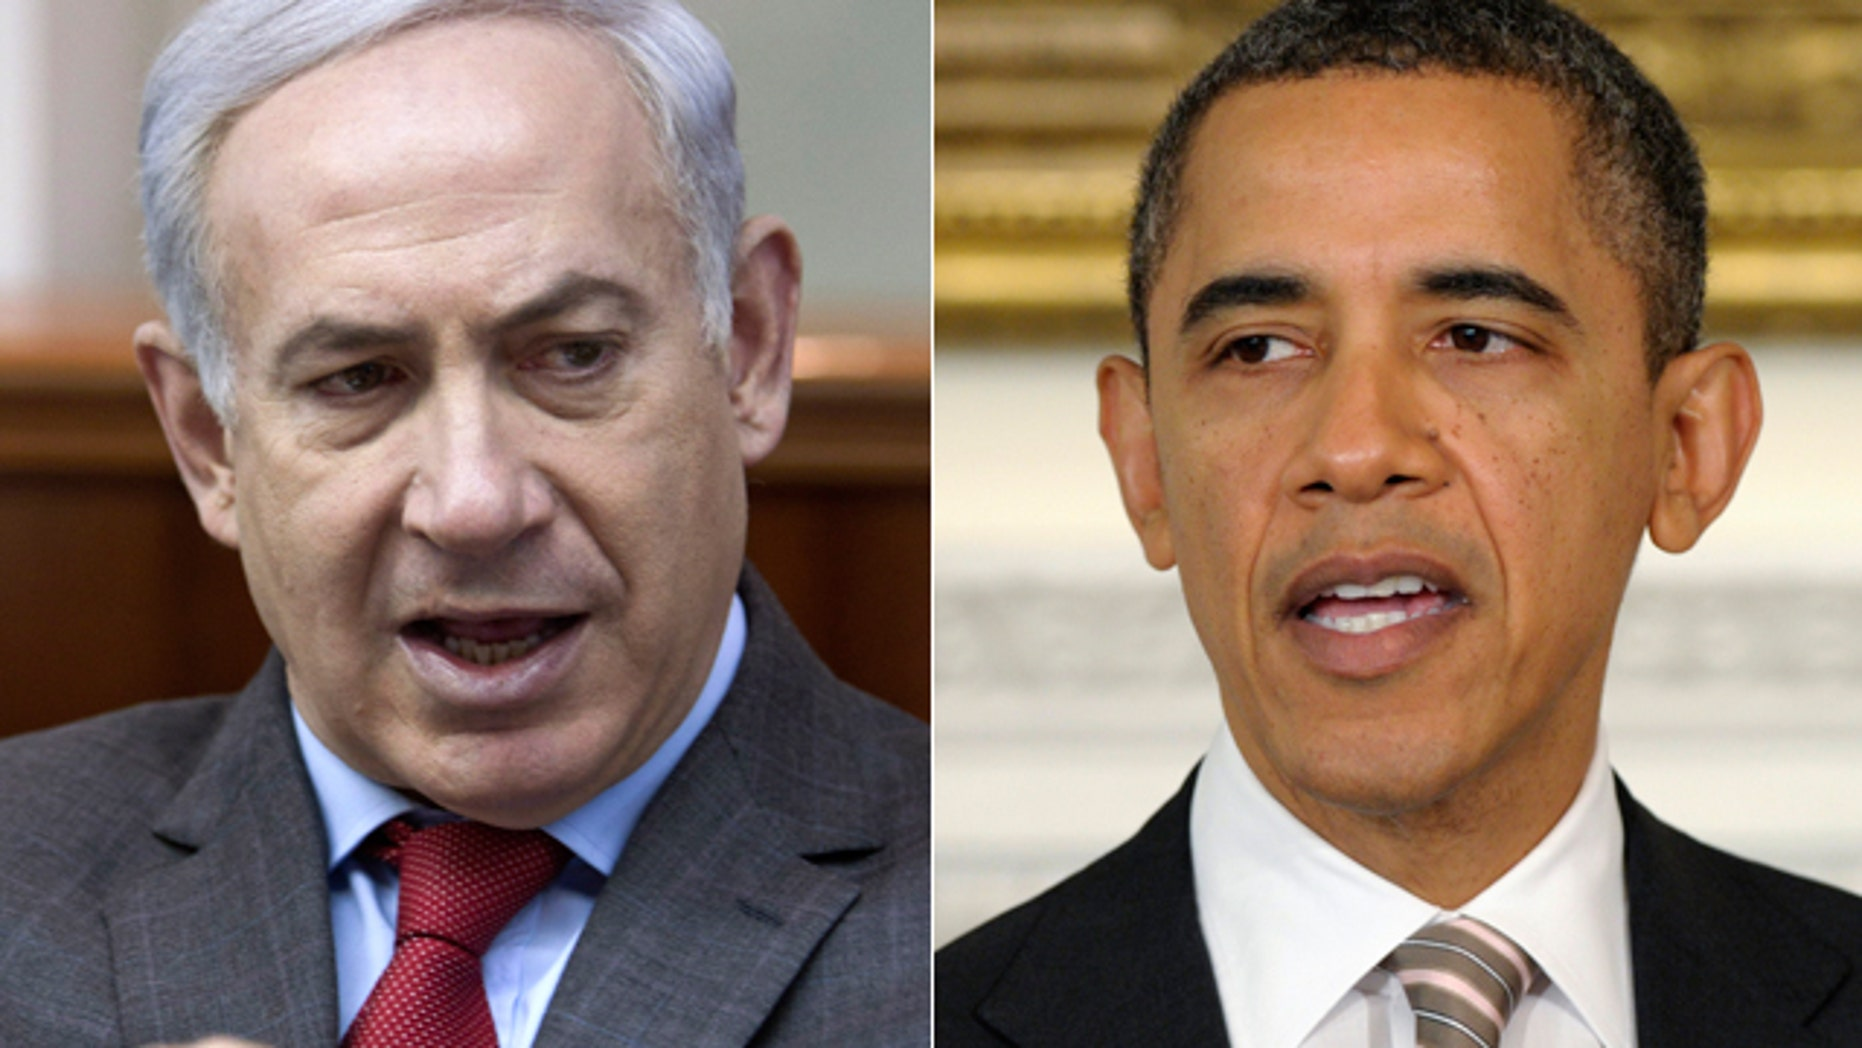 Israeli Prime Minister Benjamin Netanyahu is preparing for high-stakes meetings in Washington with President Obama on the Iranian nuclear threat.